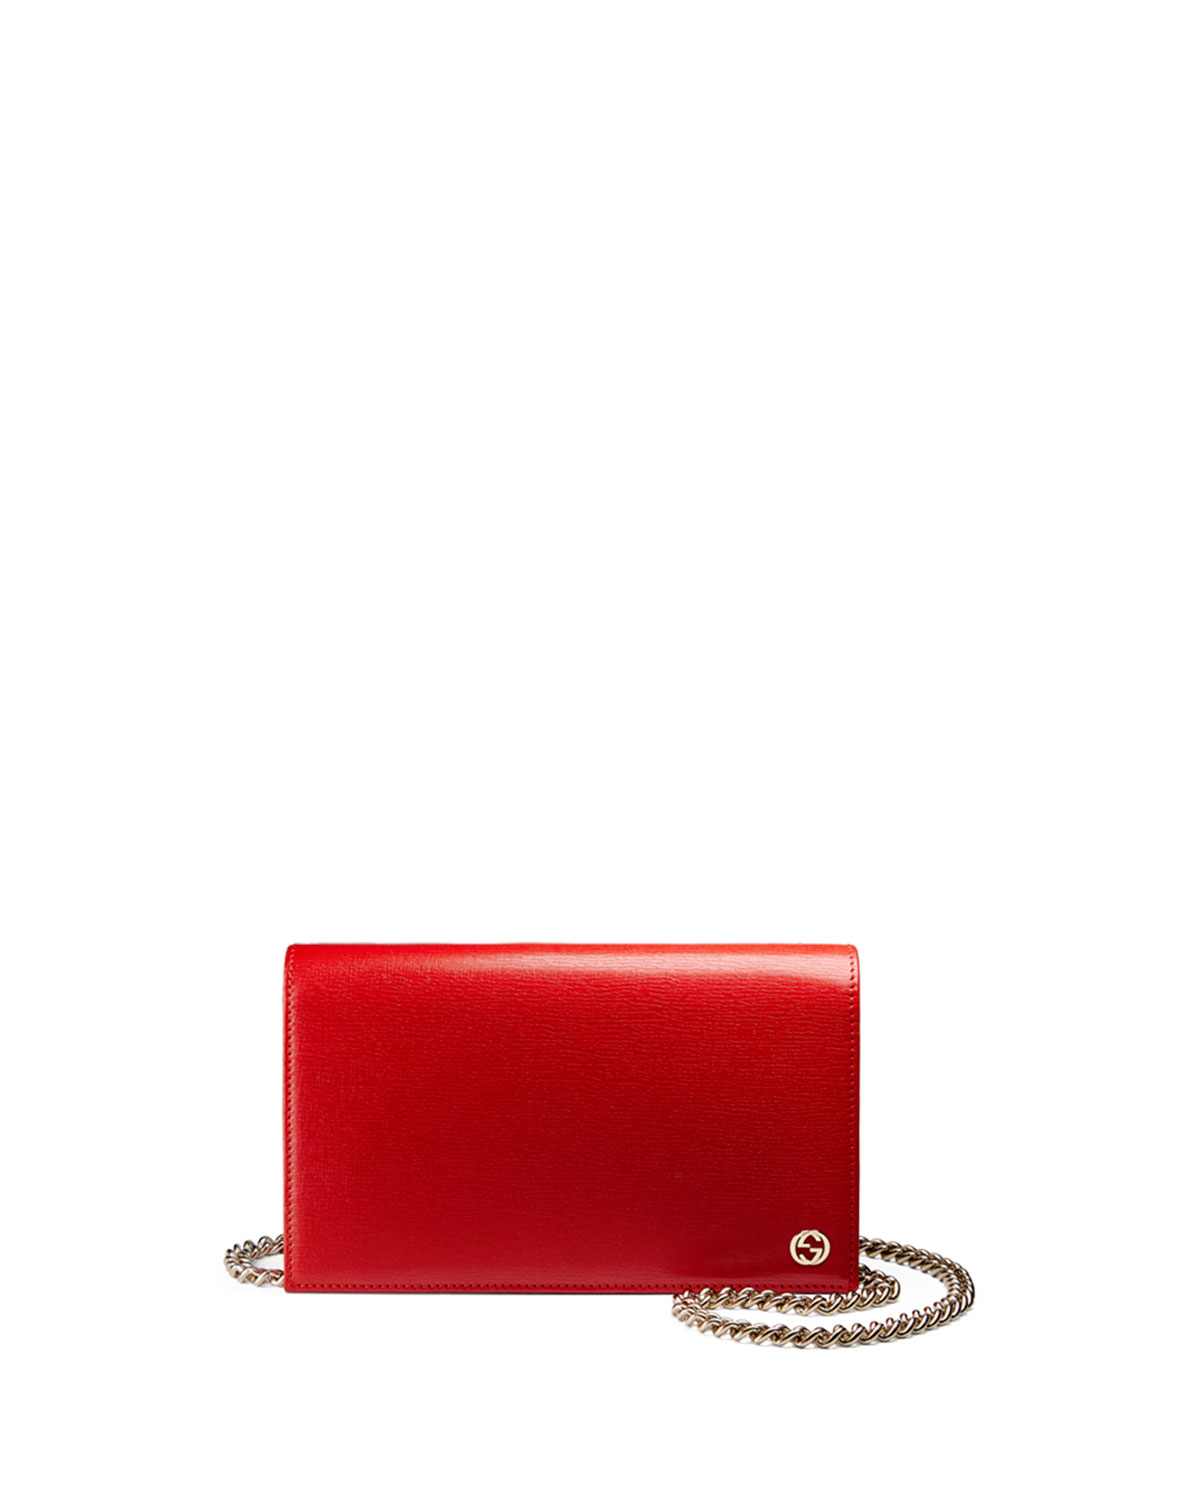 6d15a24fb982 Gucci Betty Leather Chain Wallet, Red | Neiman Marcus